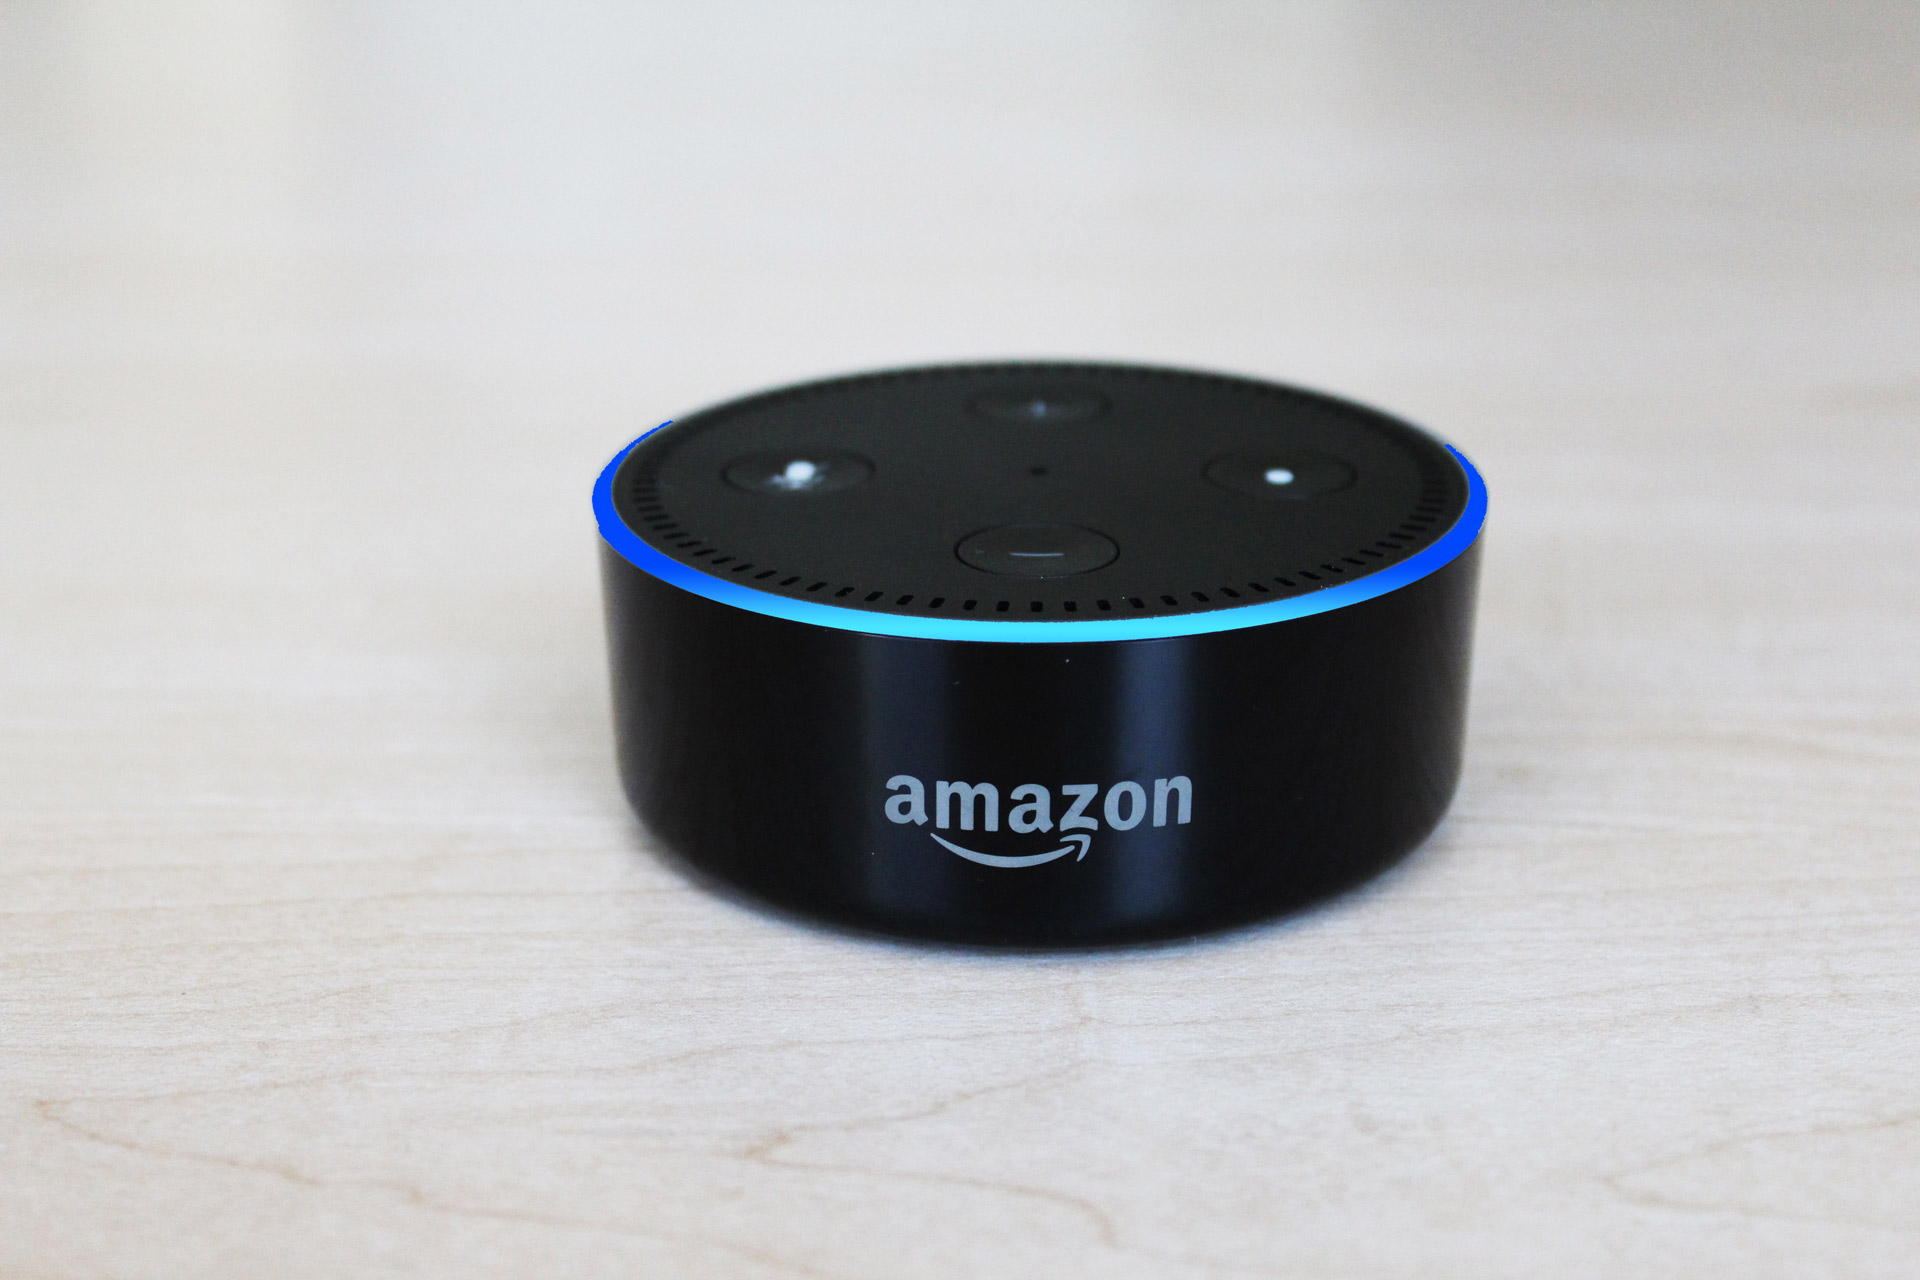 Amazon-Echo-Alexa_2